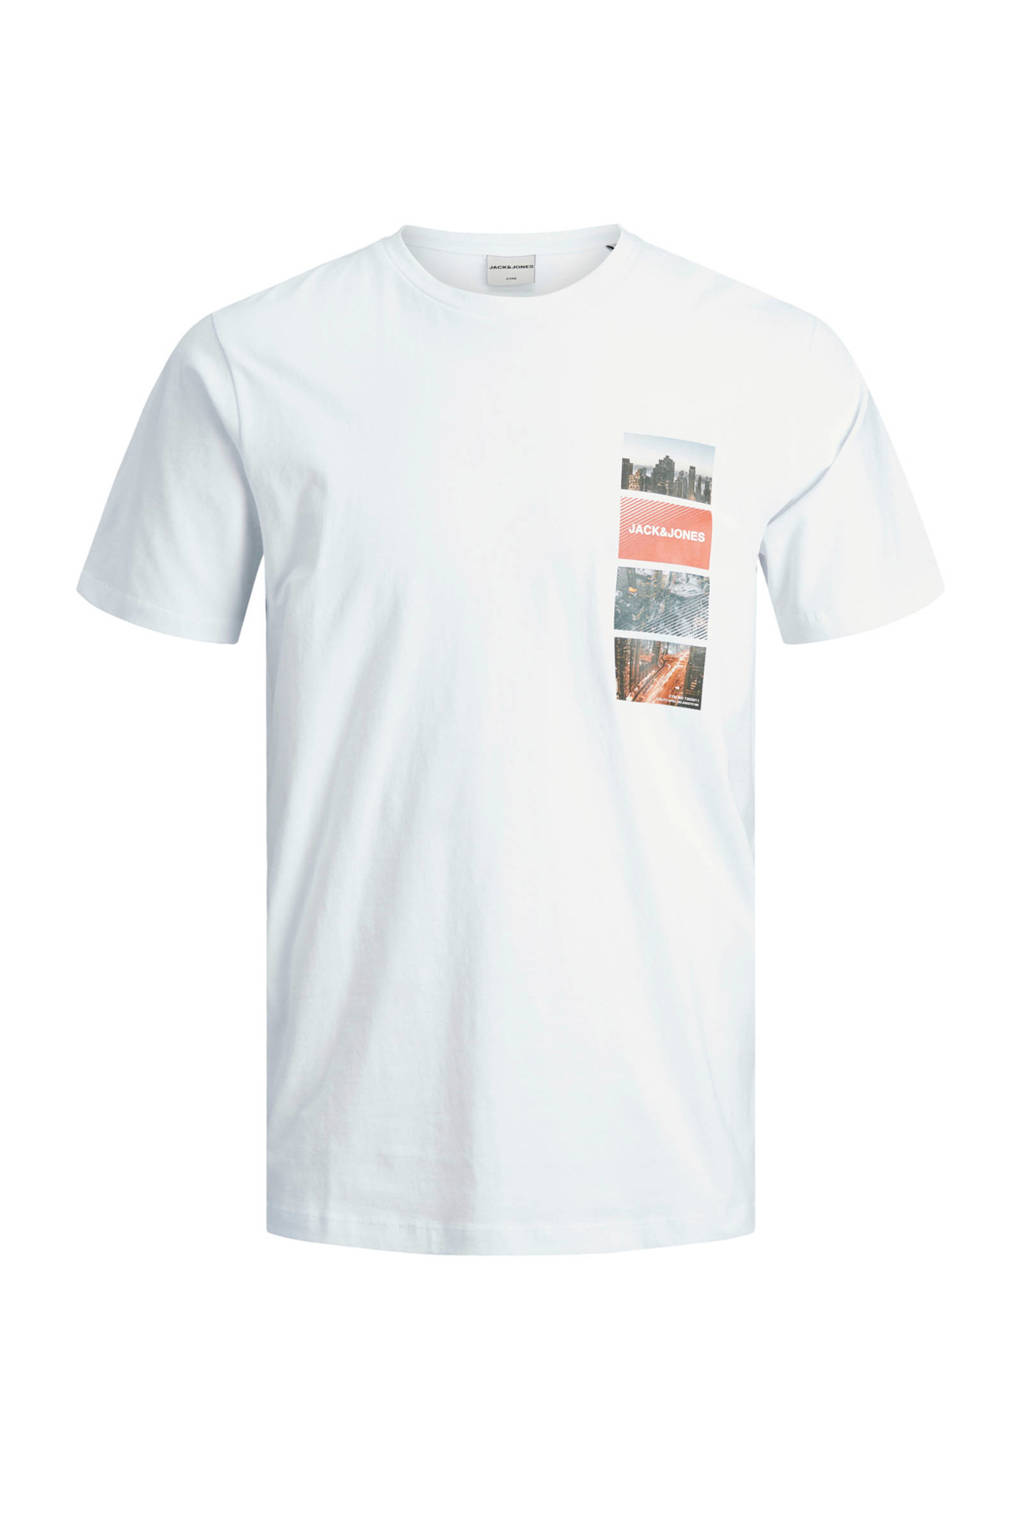 JACK & JONES CORE T-shirt met printopdruk wit, Wit